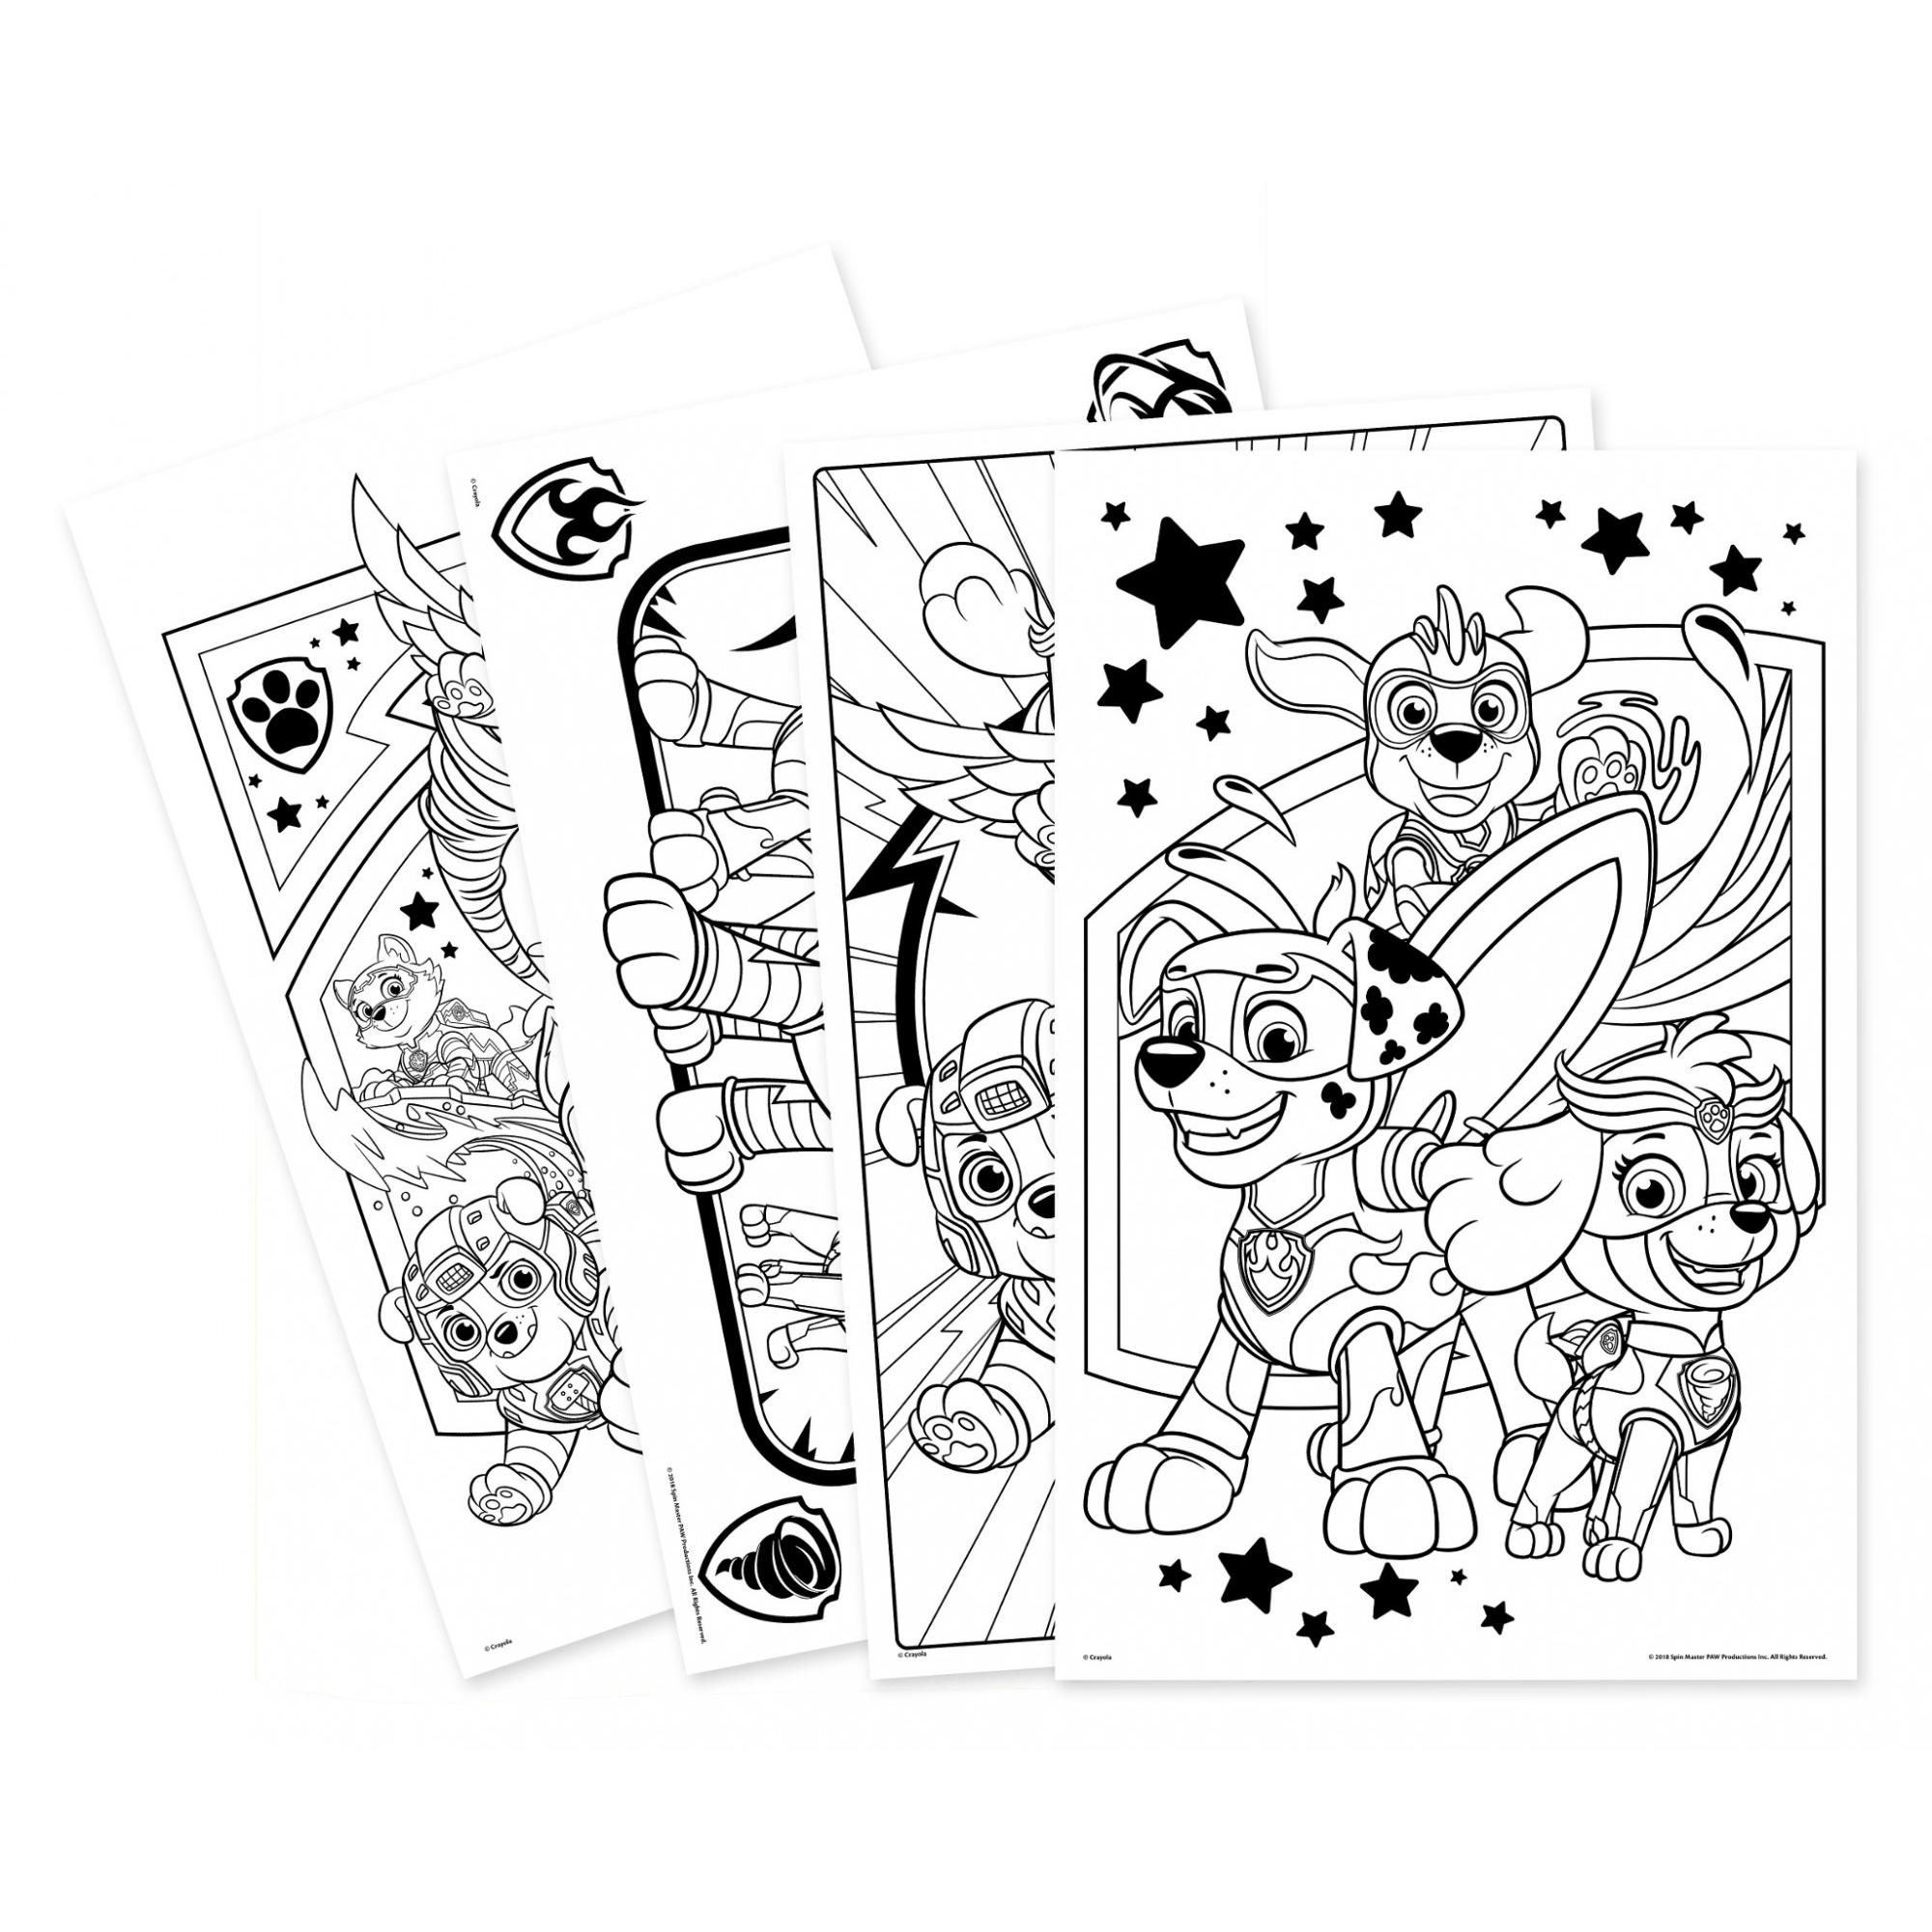 Xbox Video Game Coloring Pages Coloring Pages